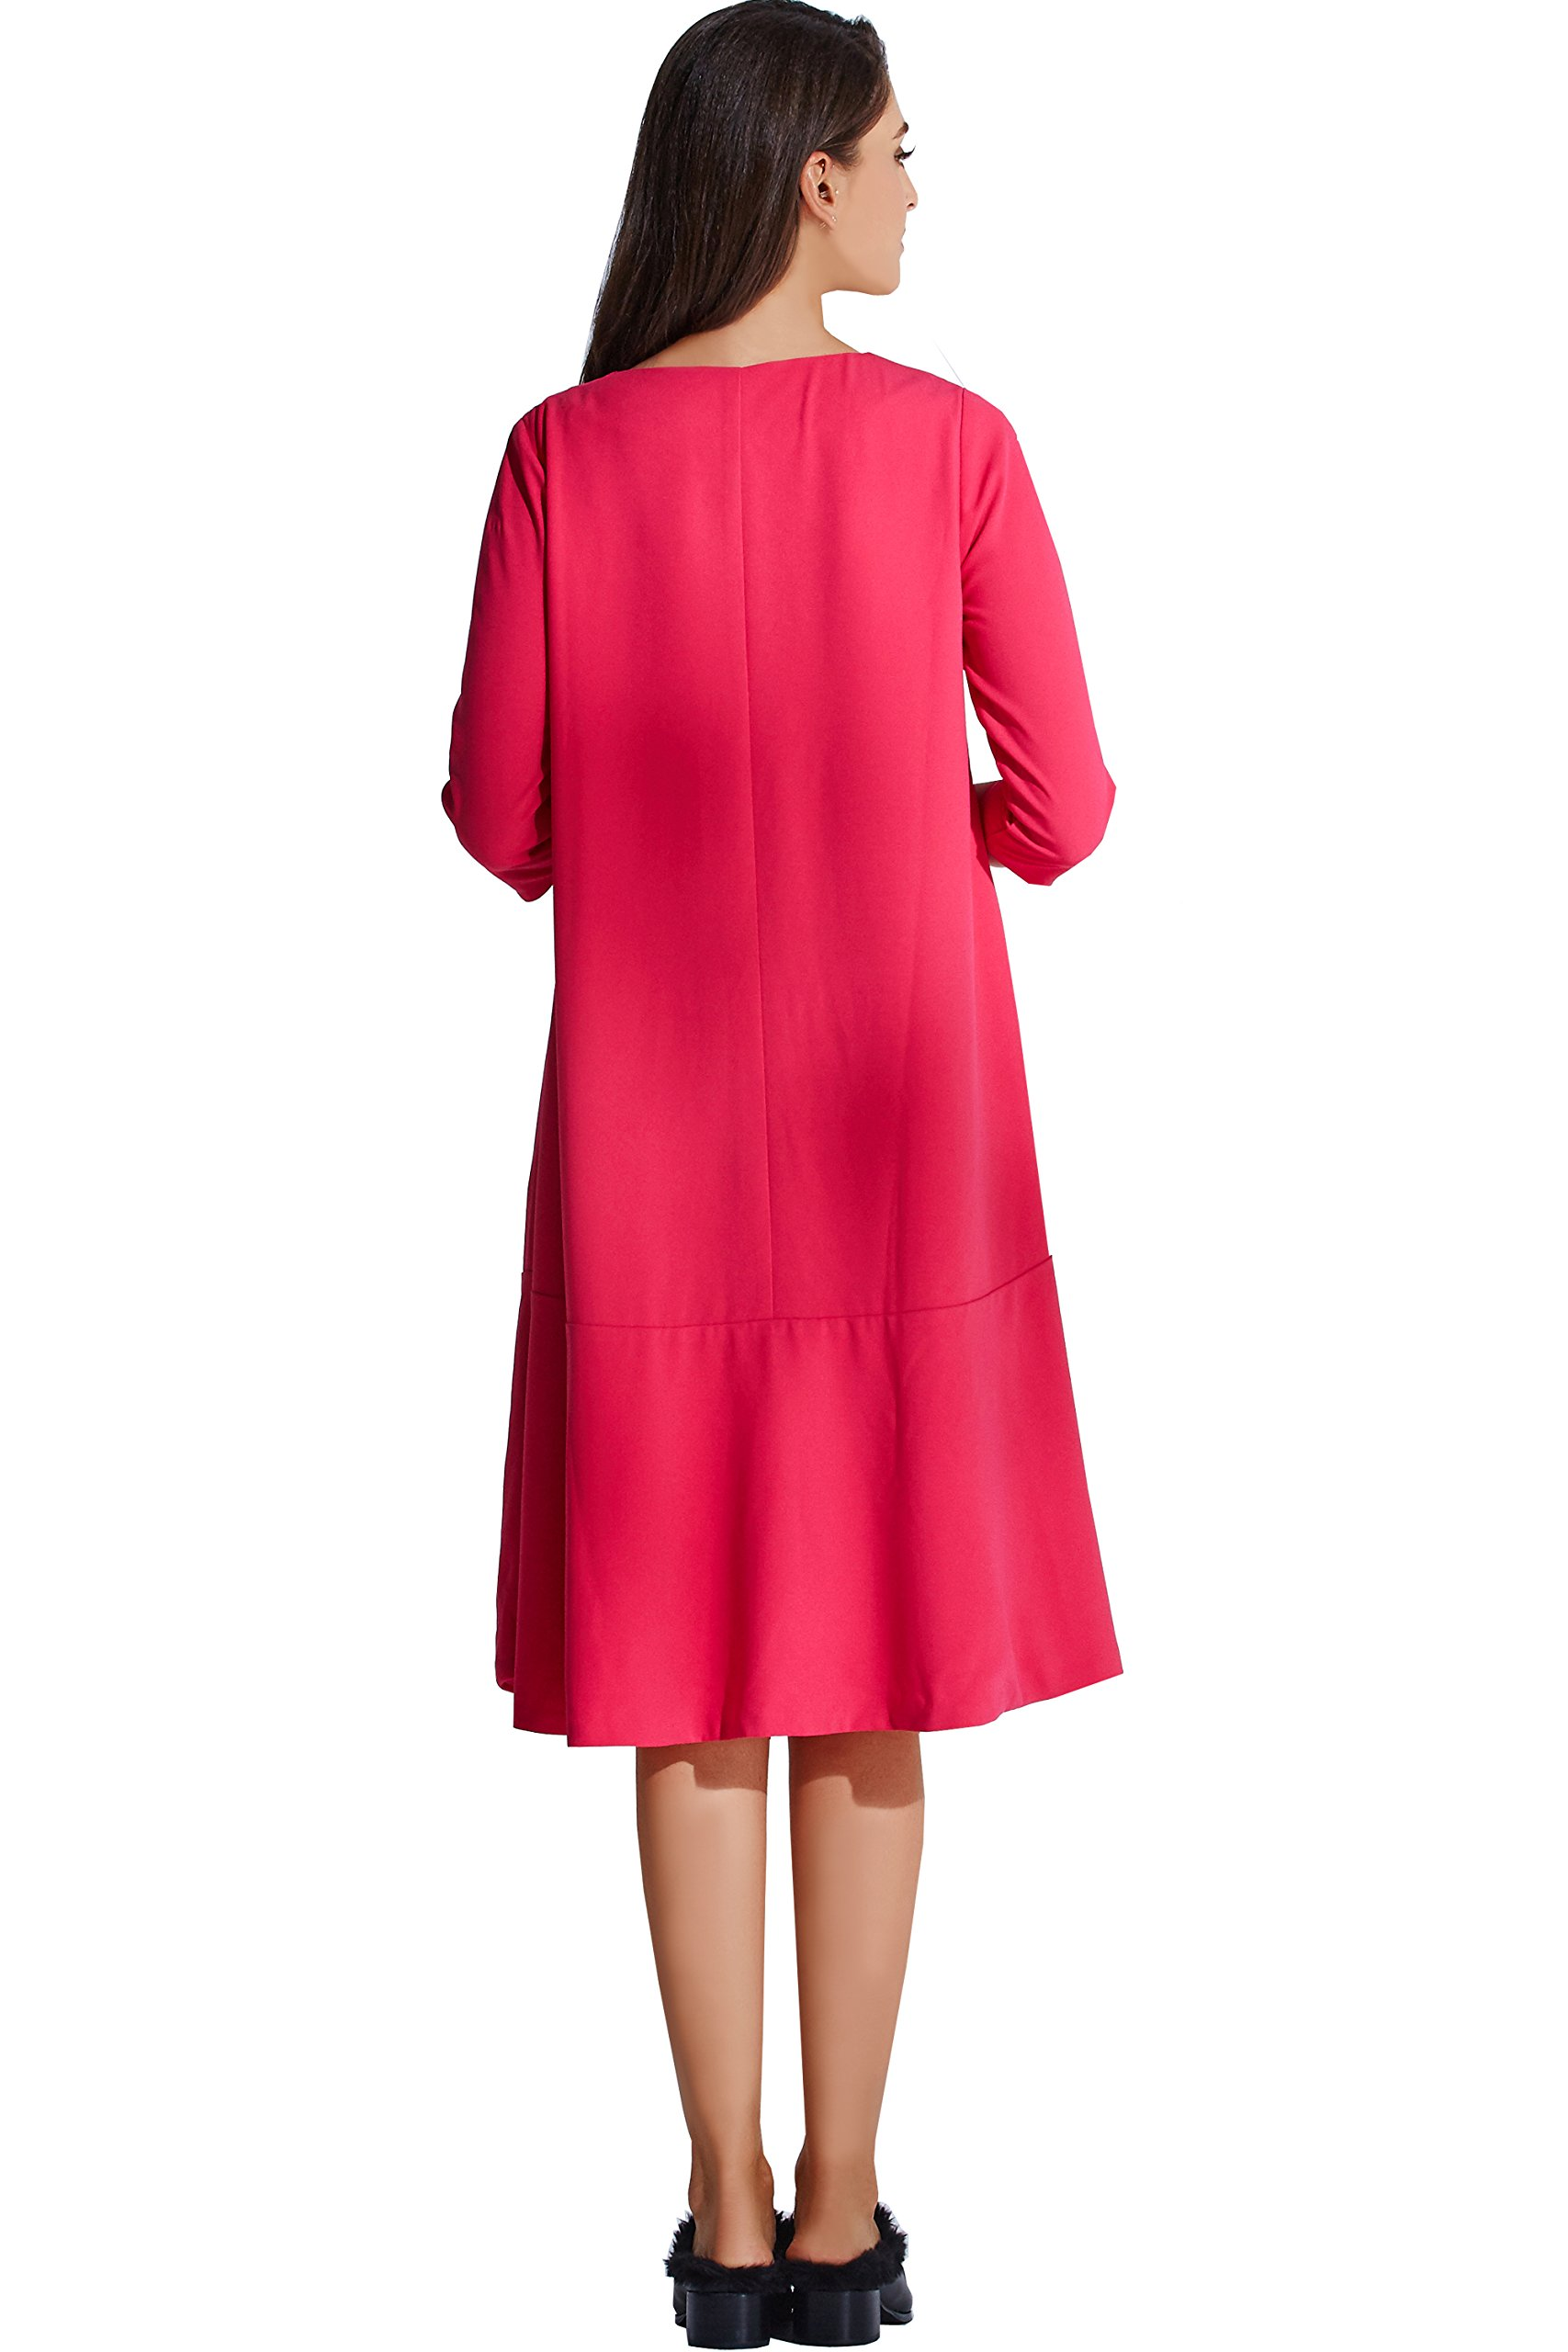 Sweet Mommy Maternity and Nursing Free Fit Baby Shower Dress Hot Pink, M by Sweet Mommy (Image #5)